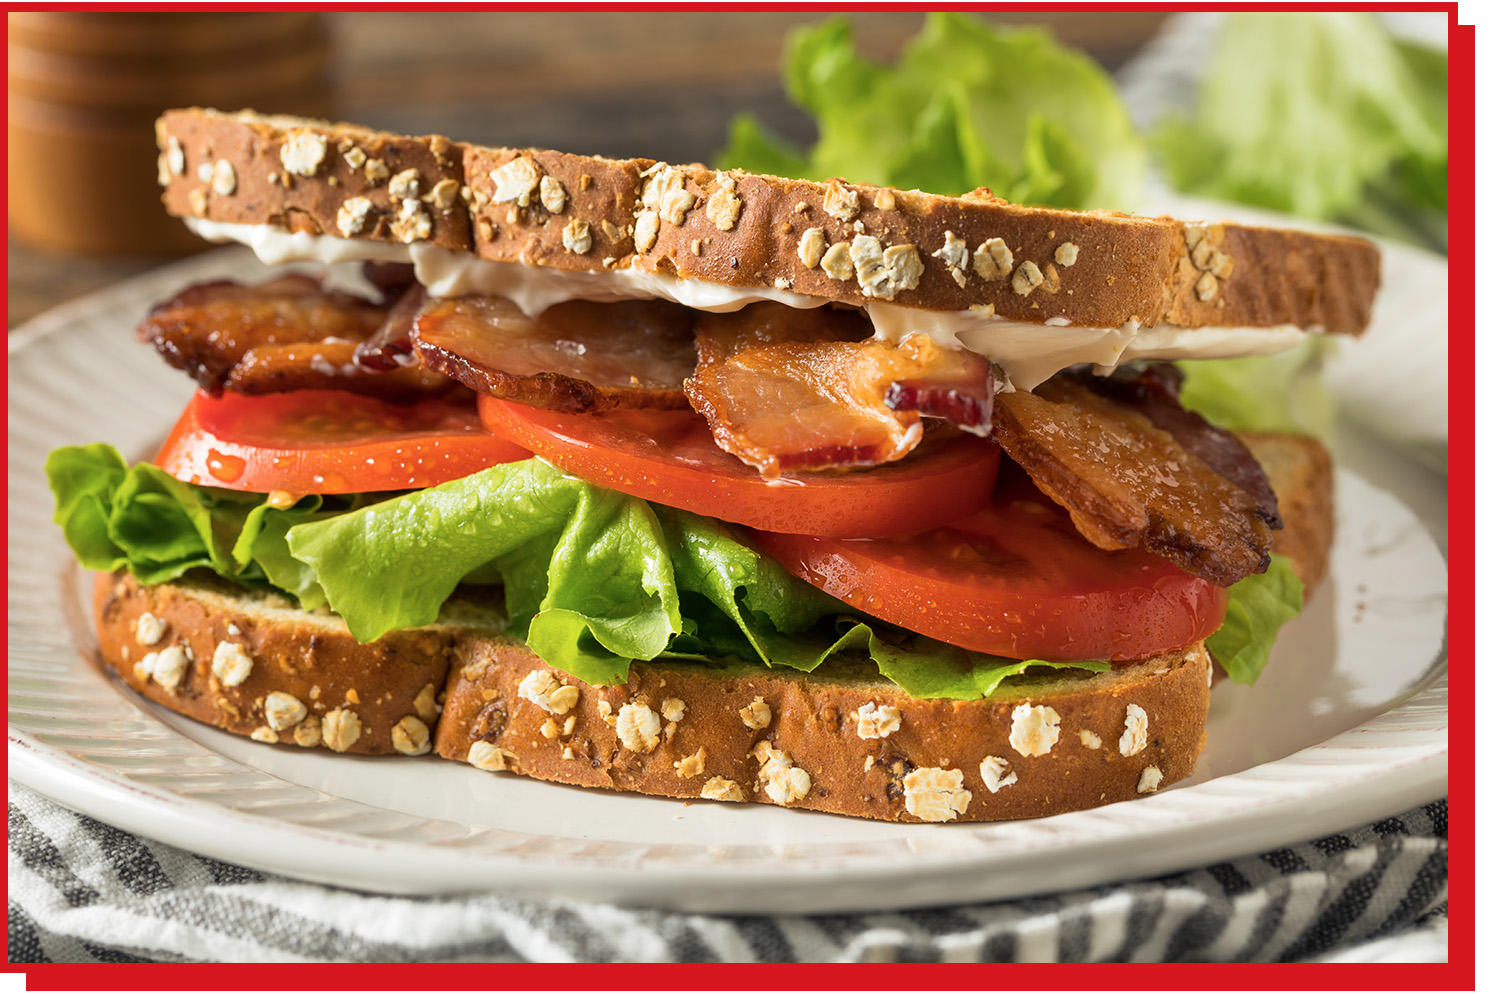 Sandwich with mayo, bacon, tomato, and lettuce layers between bread.